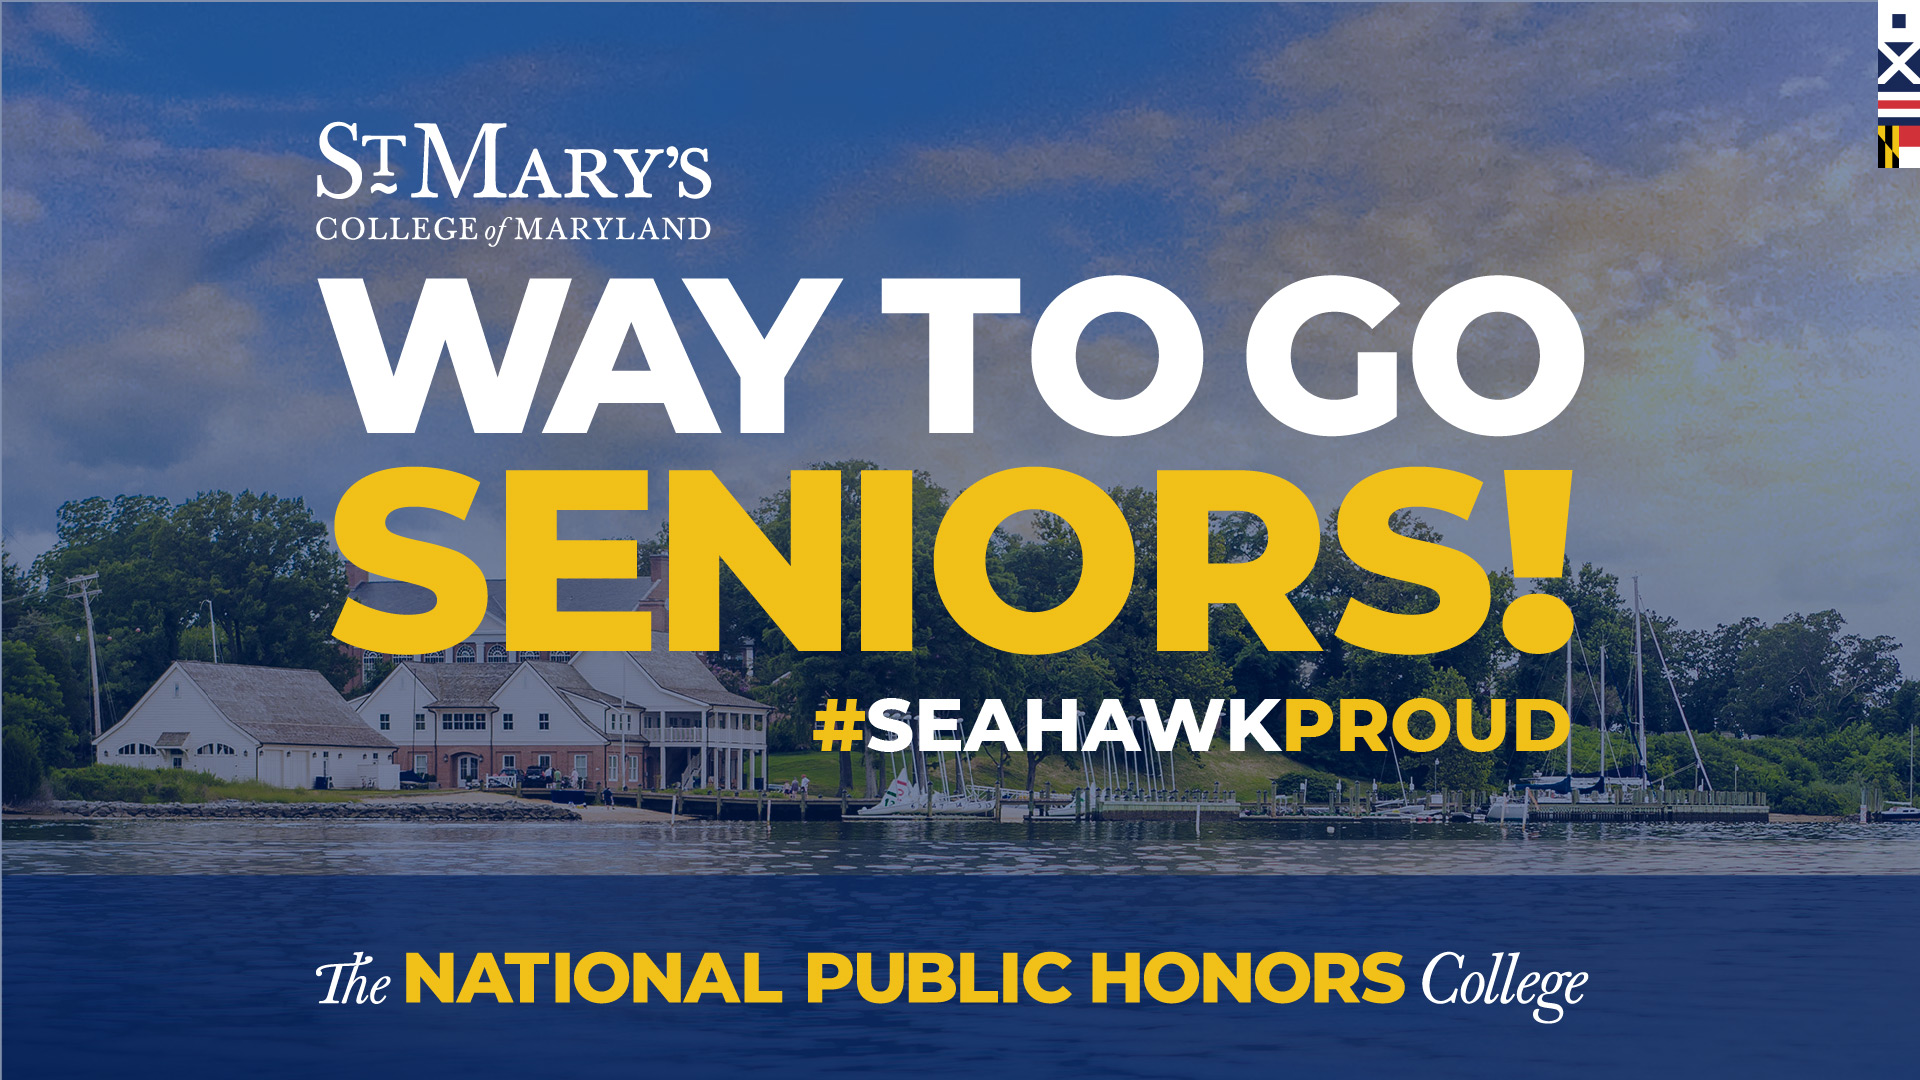 St. Mary's College of Maryland, Way to Go Seniors! #seahawkproud, The National Public Honors College